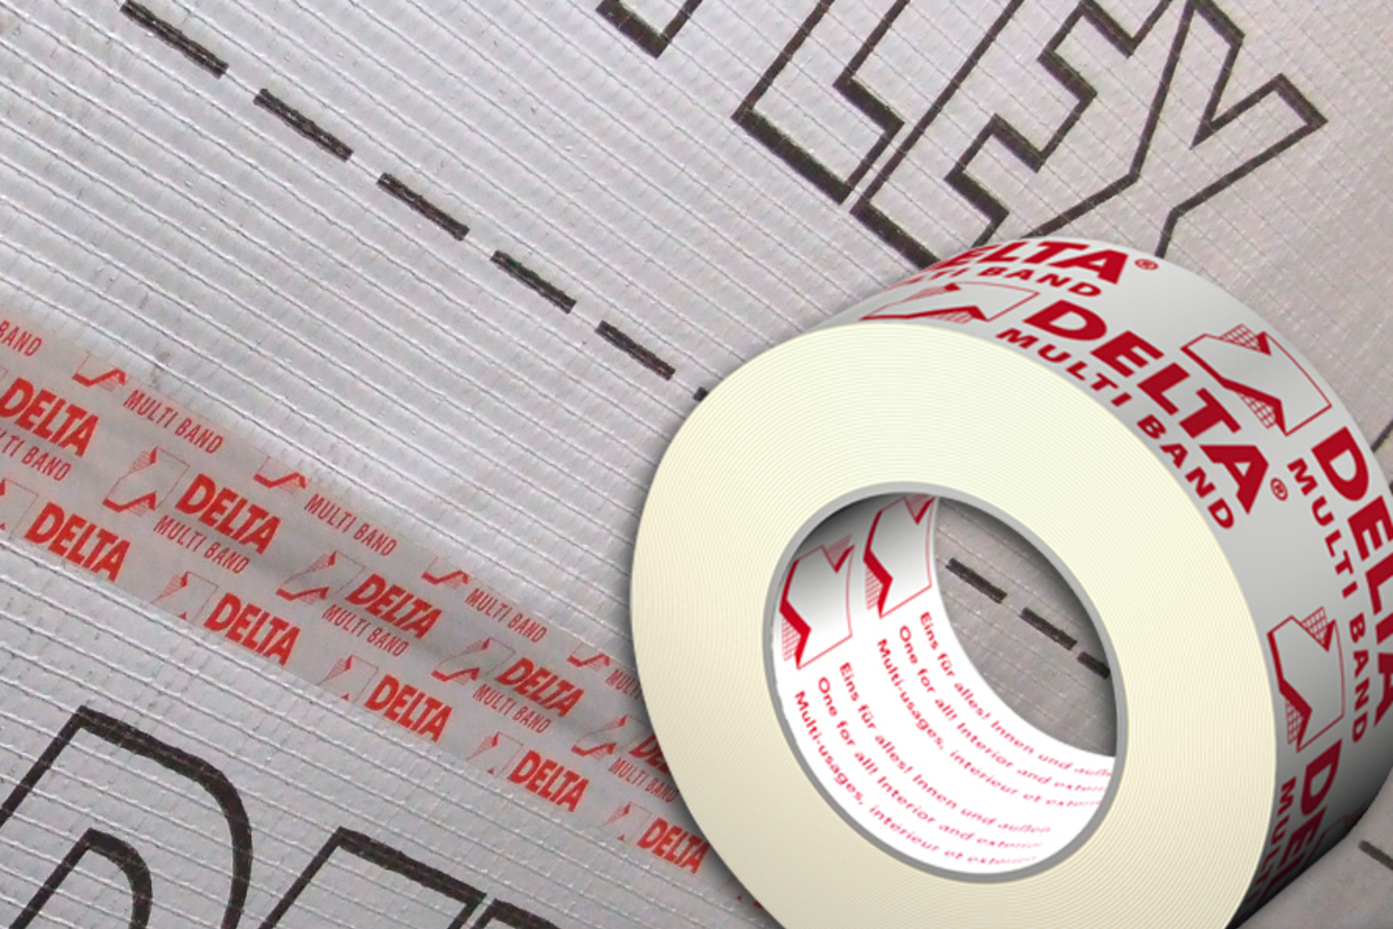 DELTA®-MULTI-BAND M60 / M100 adhesive roof tape